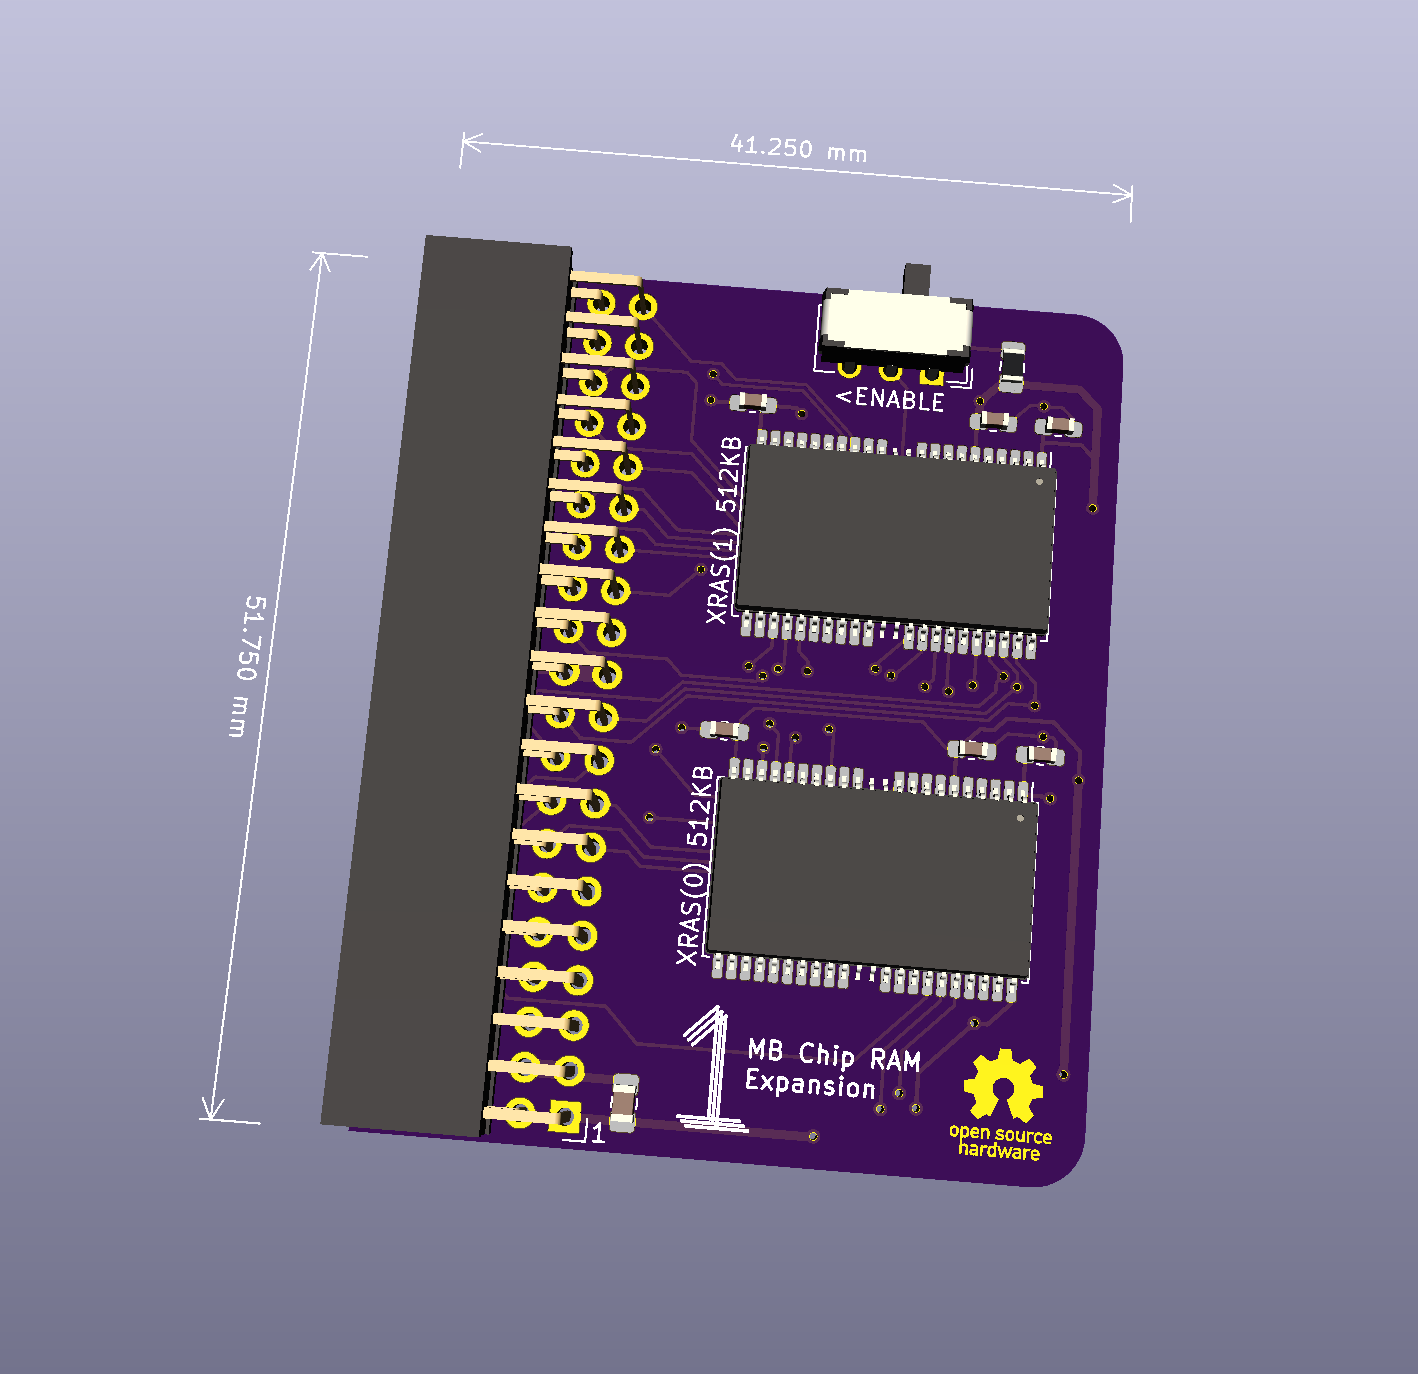 a500plus-chipram board image